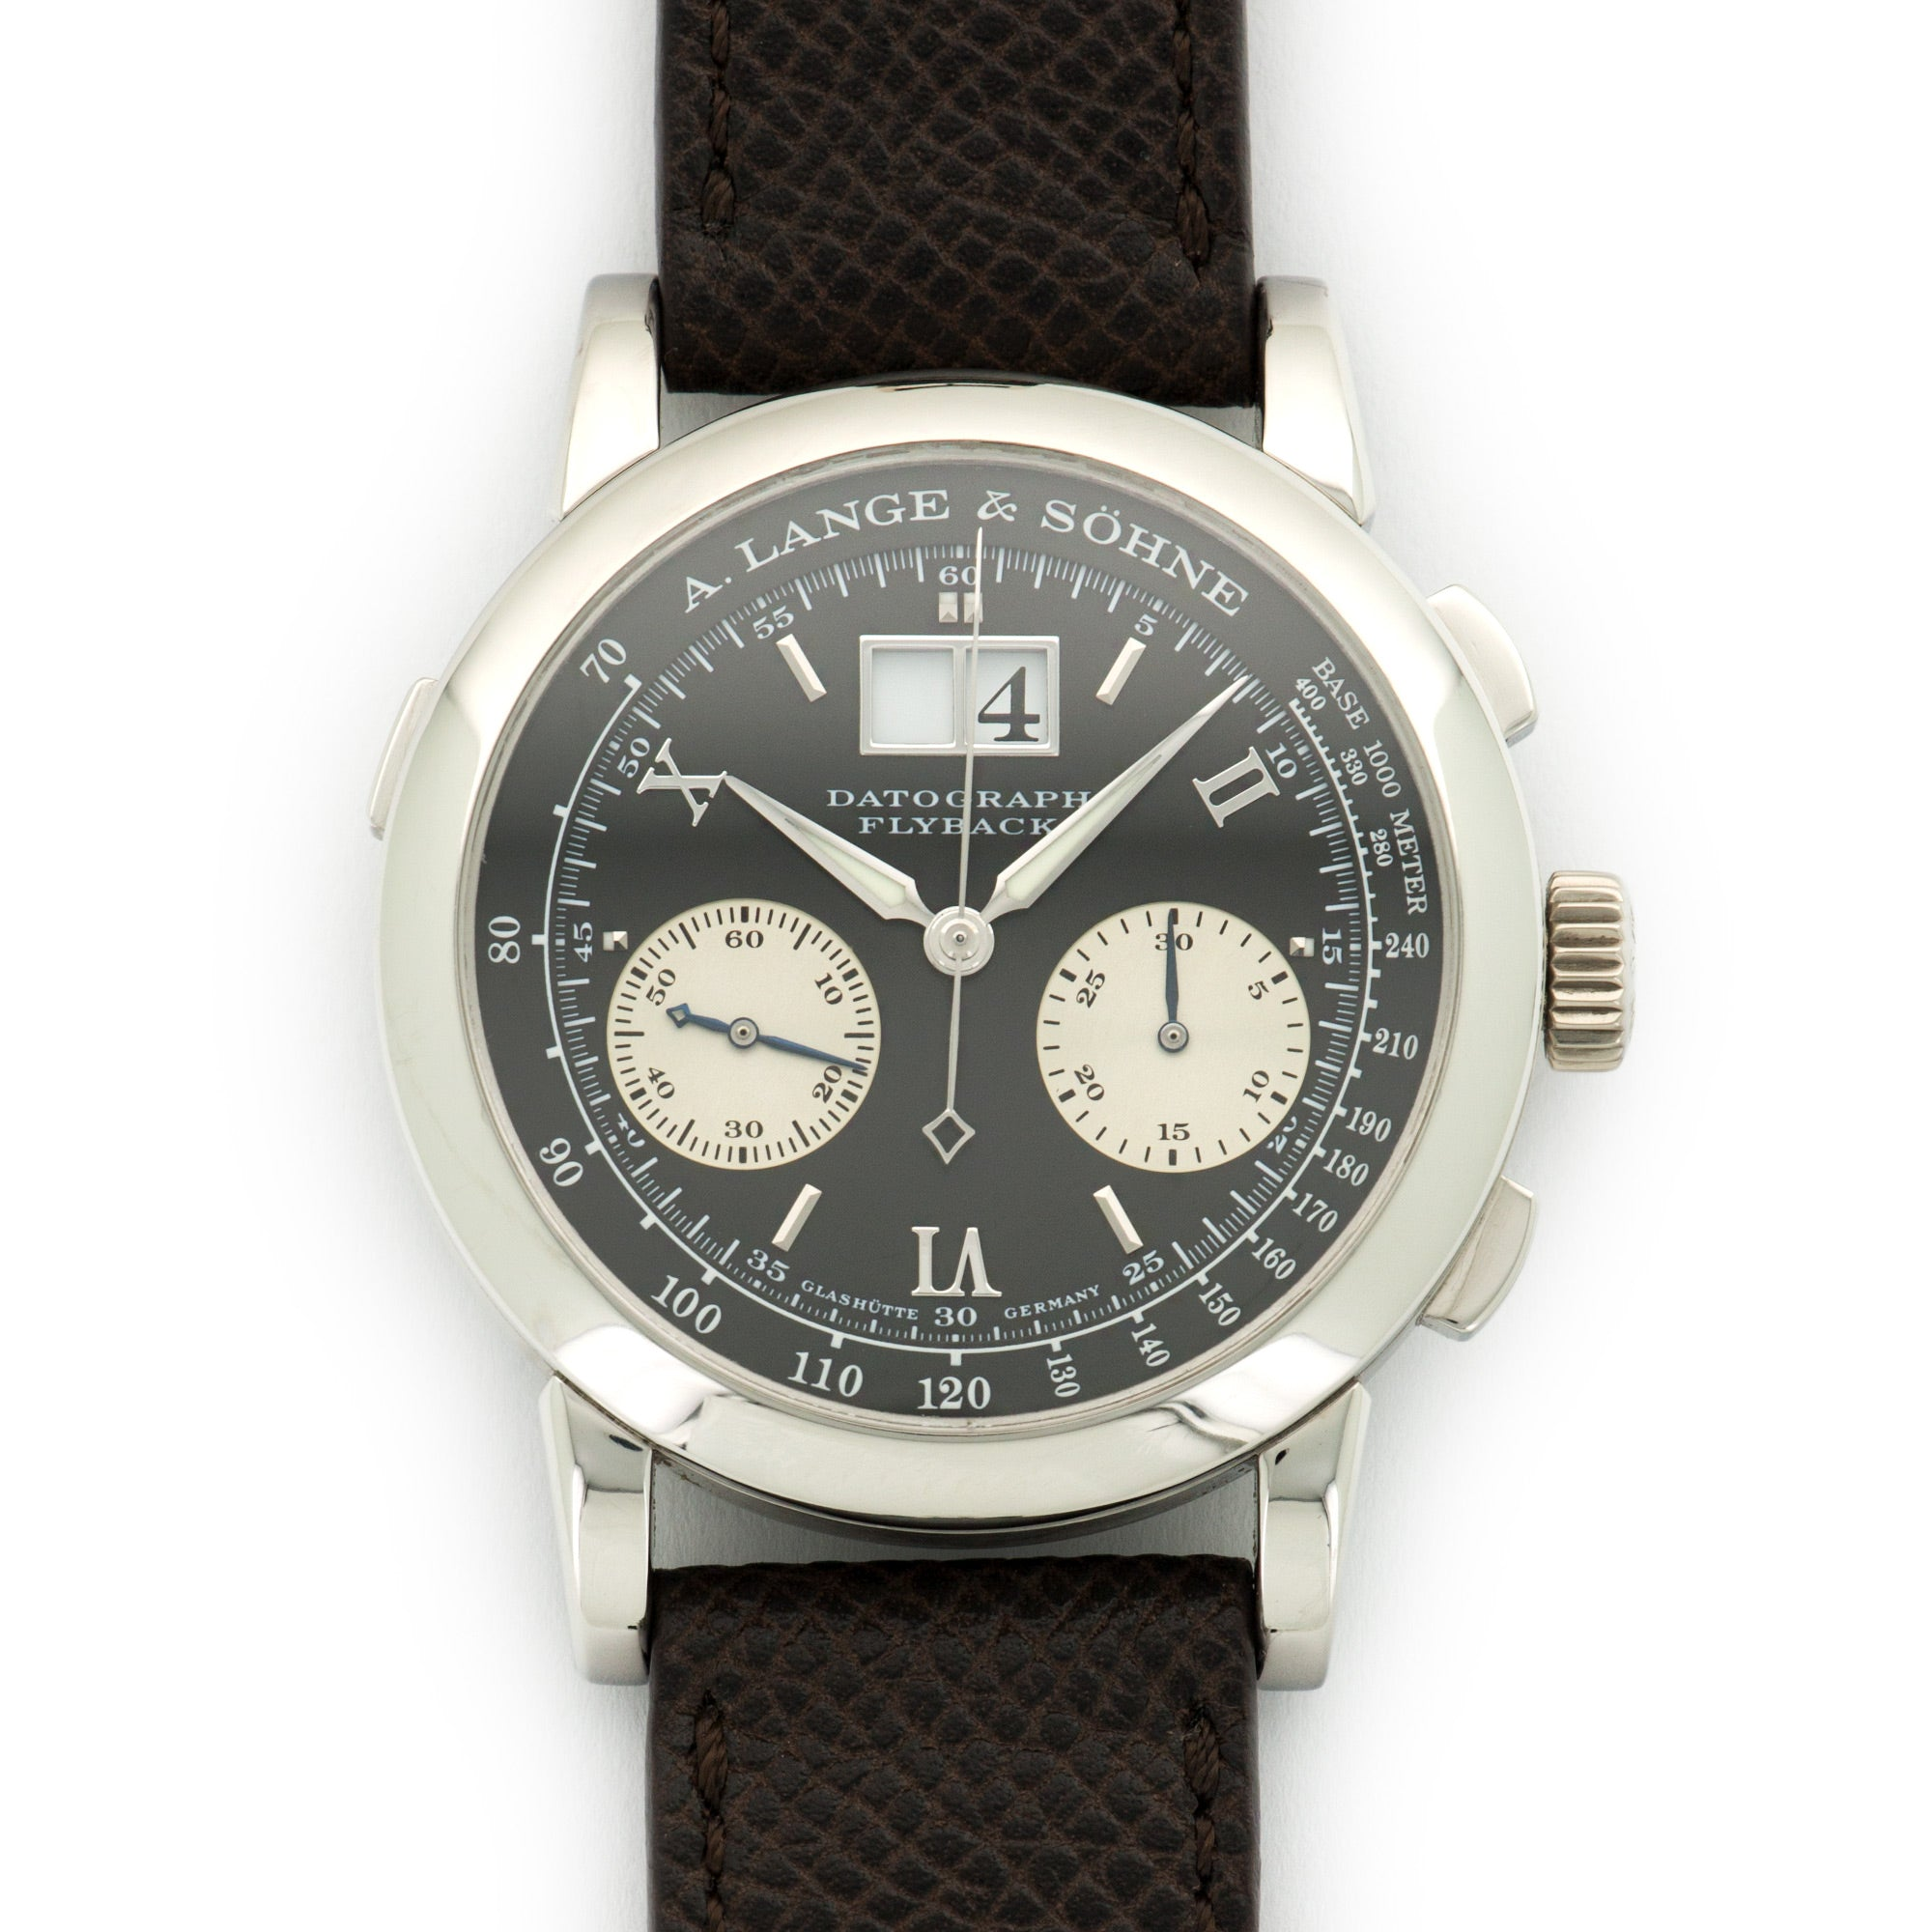 A. Lange & Sohne Datograph Flyback 403.035 Platinum  Excellent Gents Platinum Black 39mm Manual Early 2000s Handmade Italian Leather Strap Box